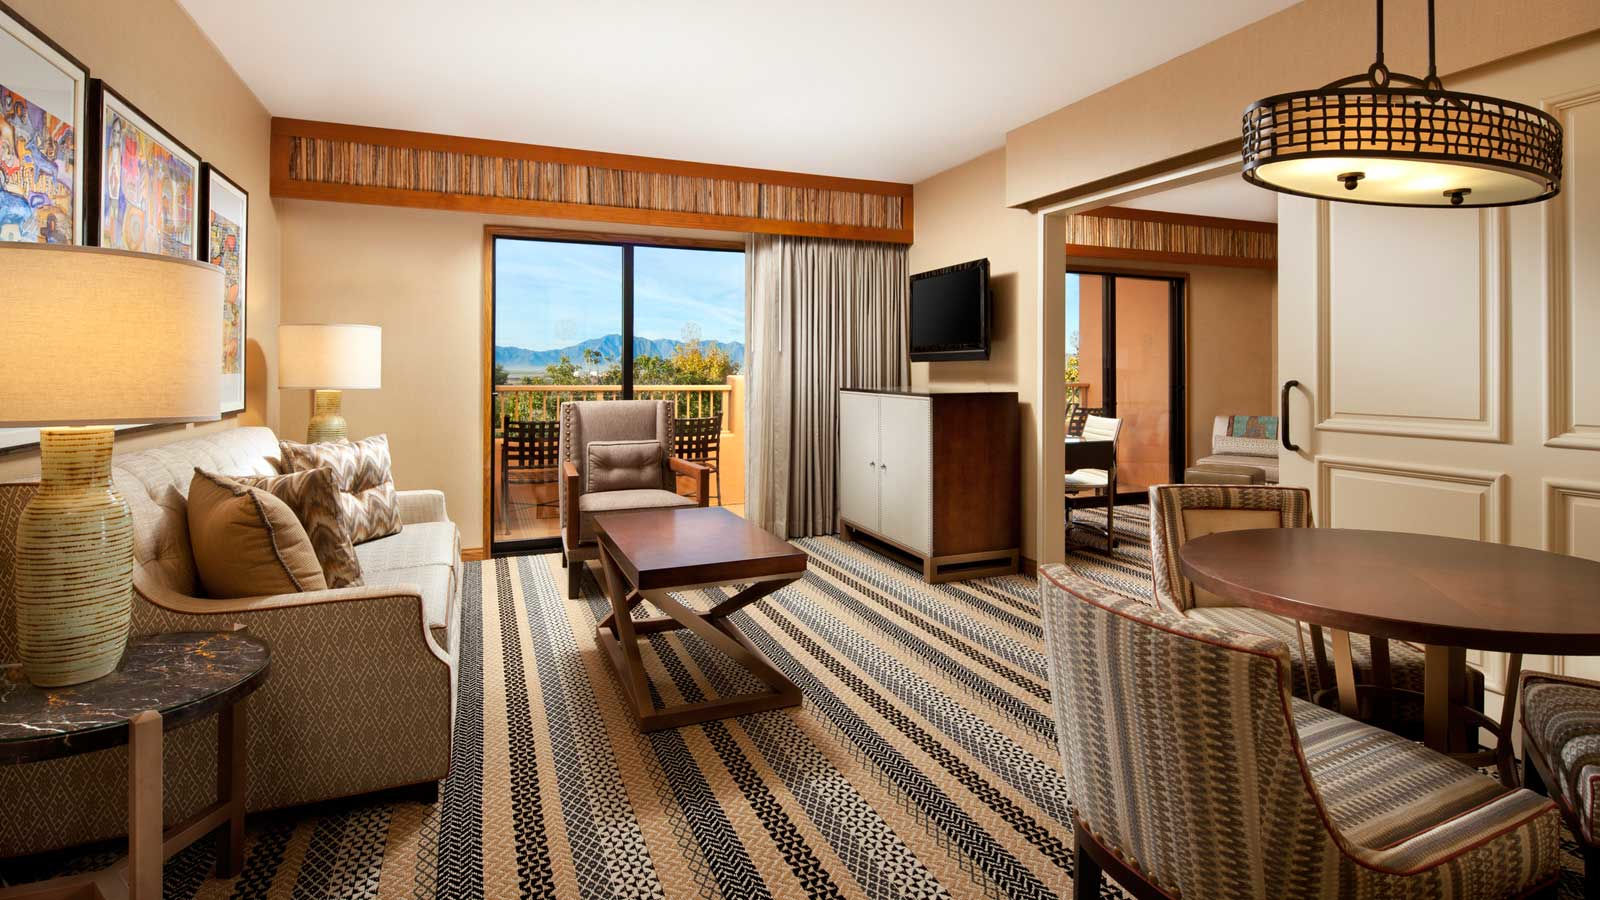 One Bedroom Executive Suite at the Sheraton Grand Resort at Wild Horse Pass